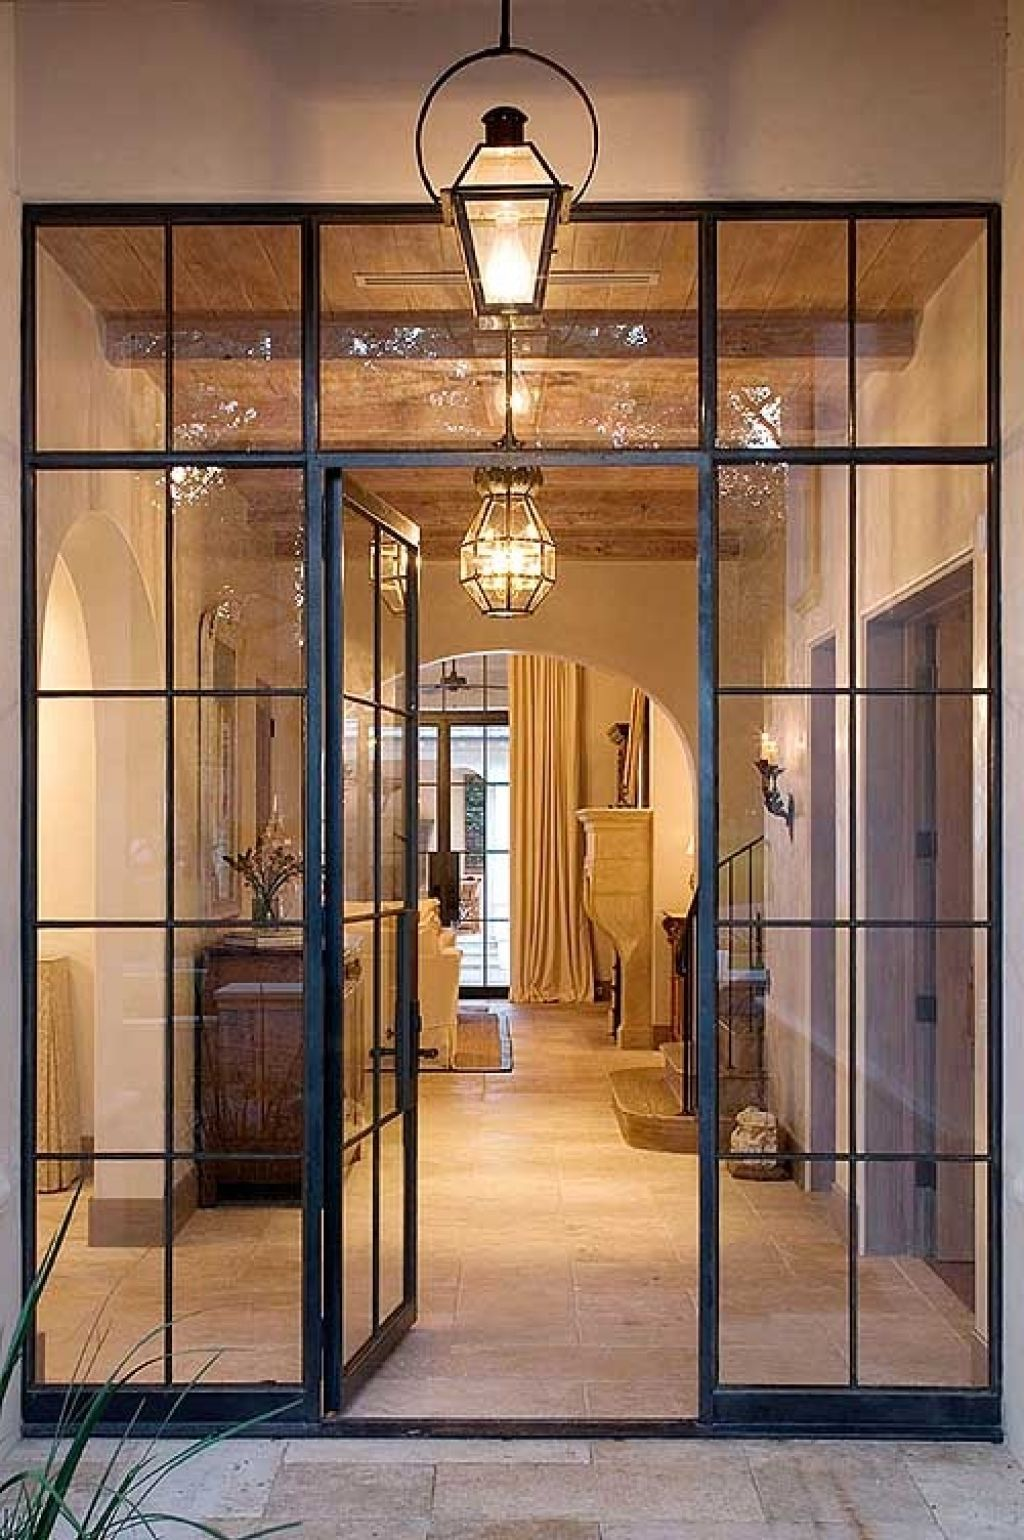 French Exterior Doors Steel: Classic Steel Door Frame French Style With Wide Crippled